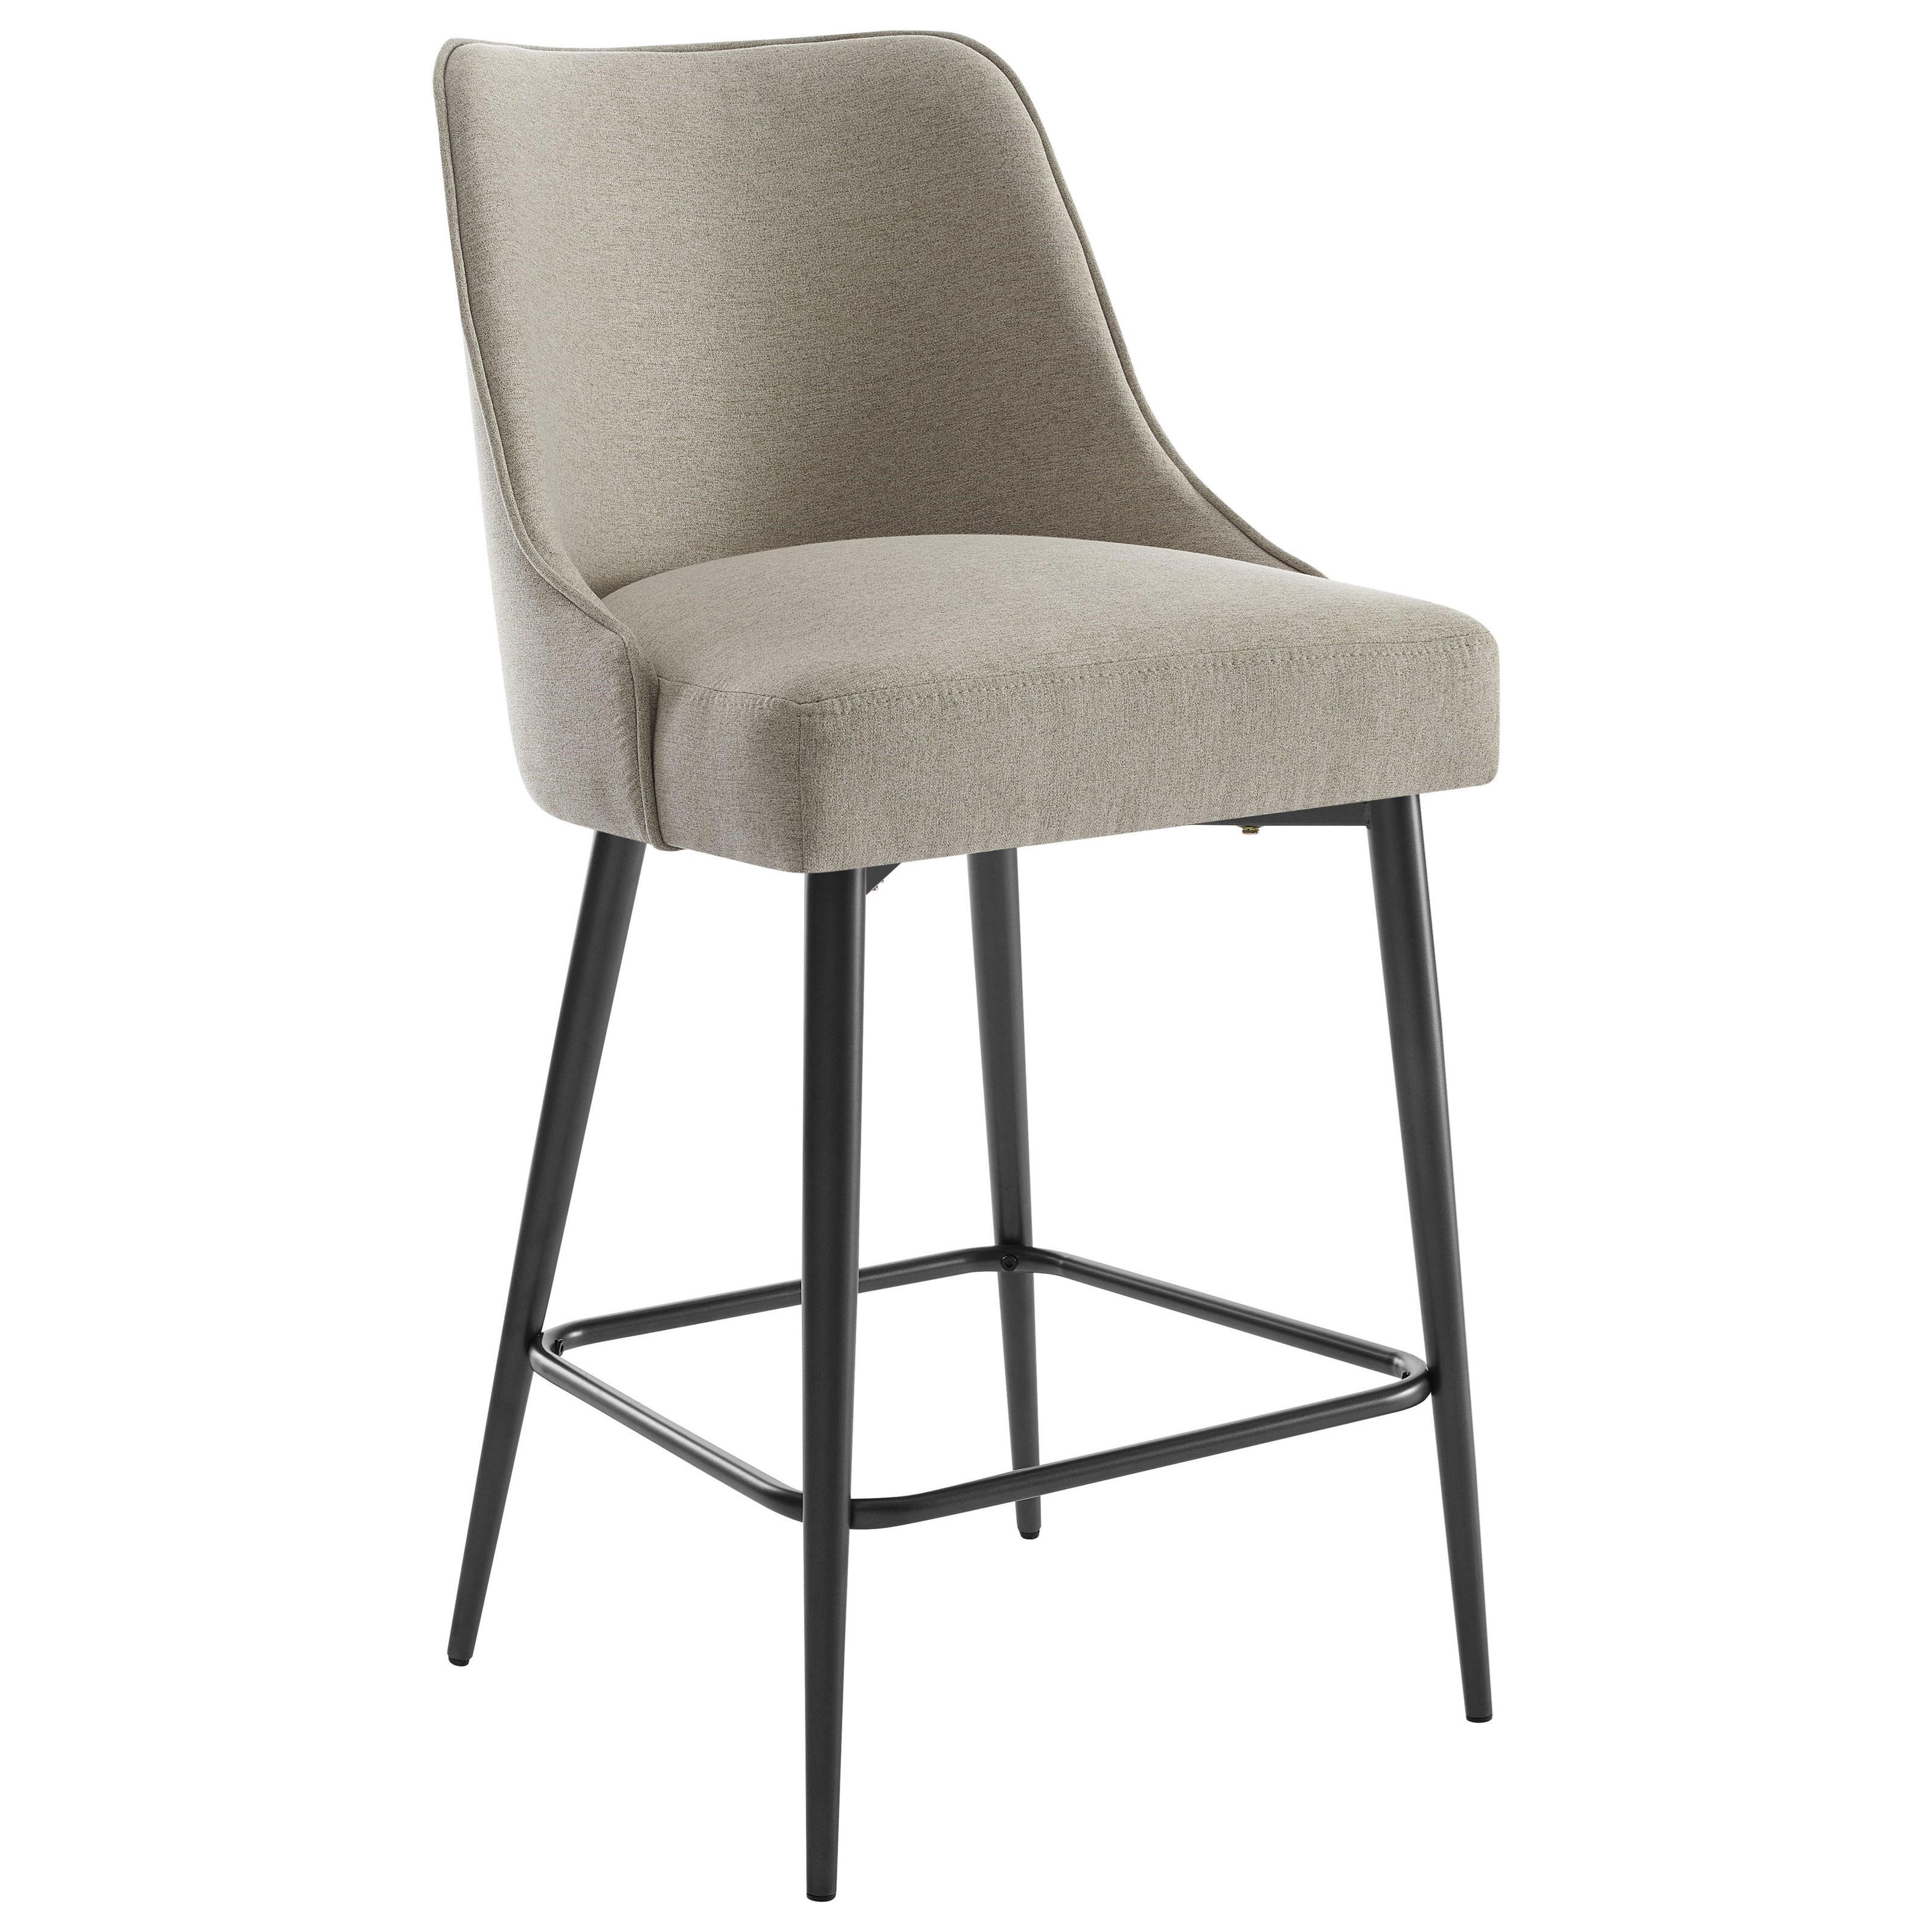 Olson SS Upholstered Counter Chair by Belfort Essentials at Belfort Furniture